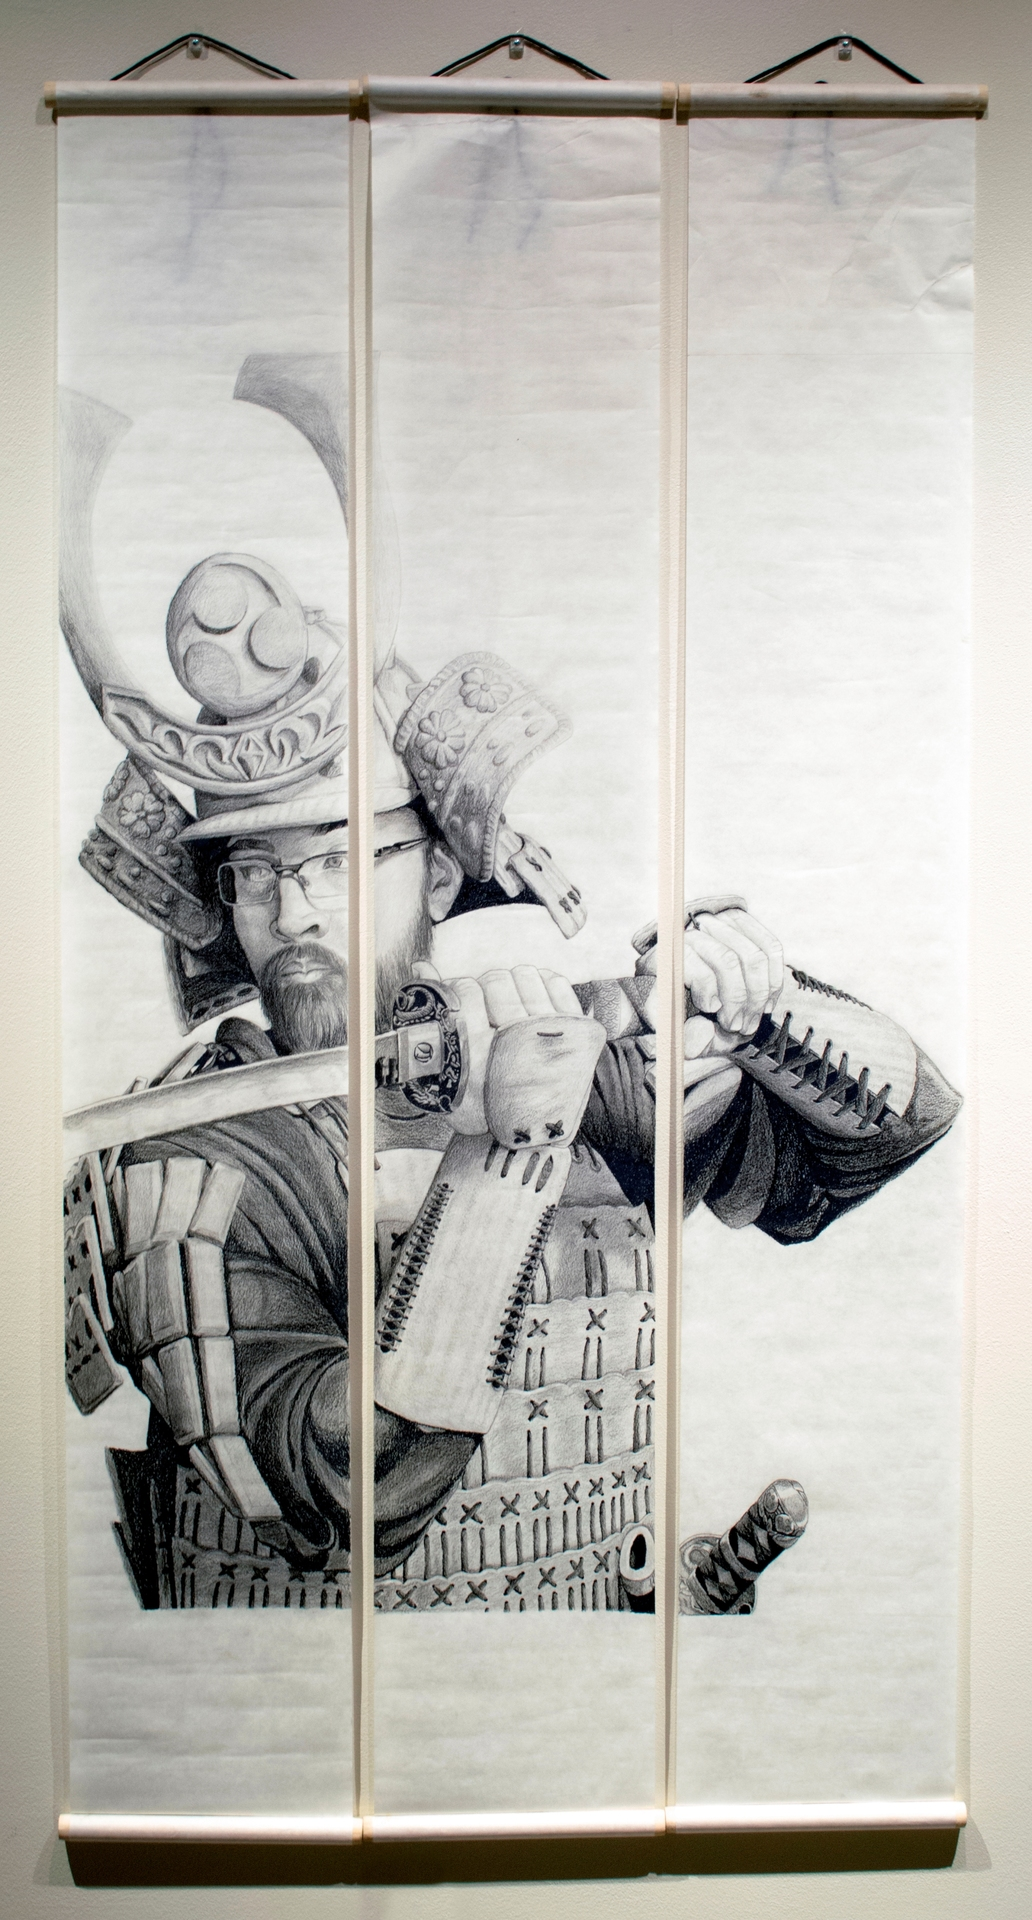 Self Portrait in Samurai Armor